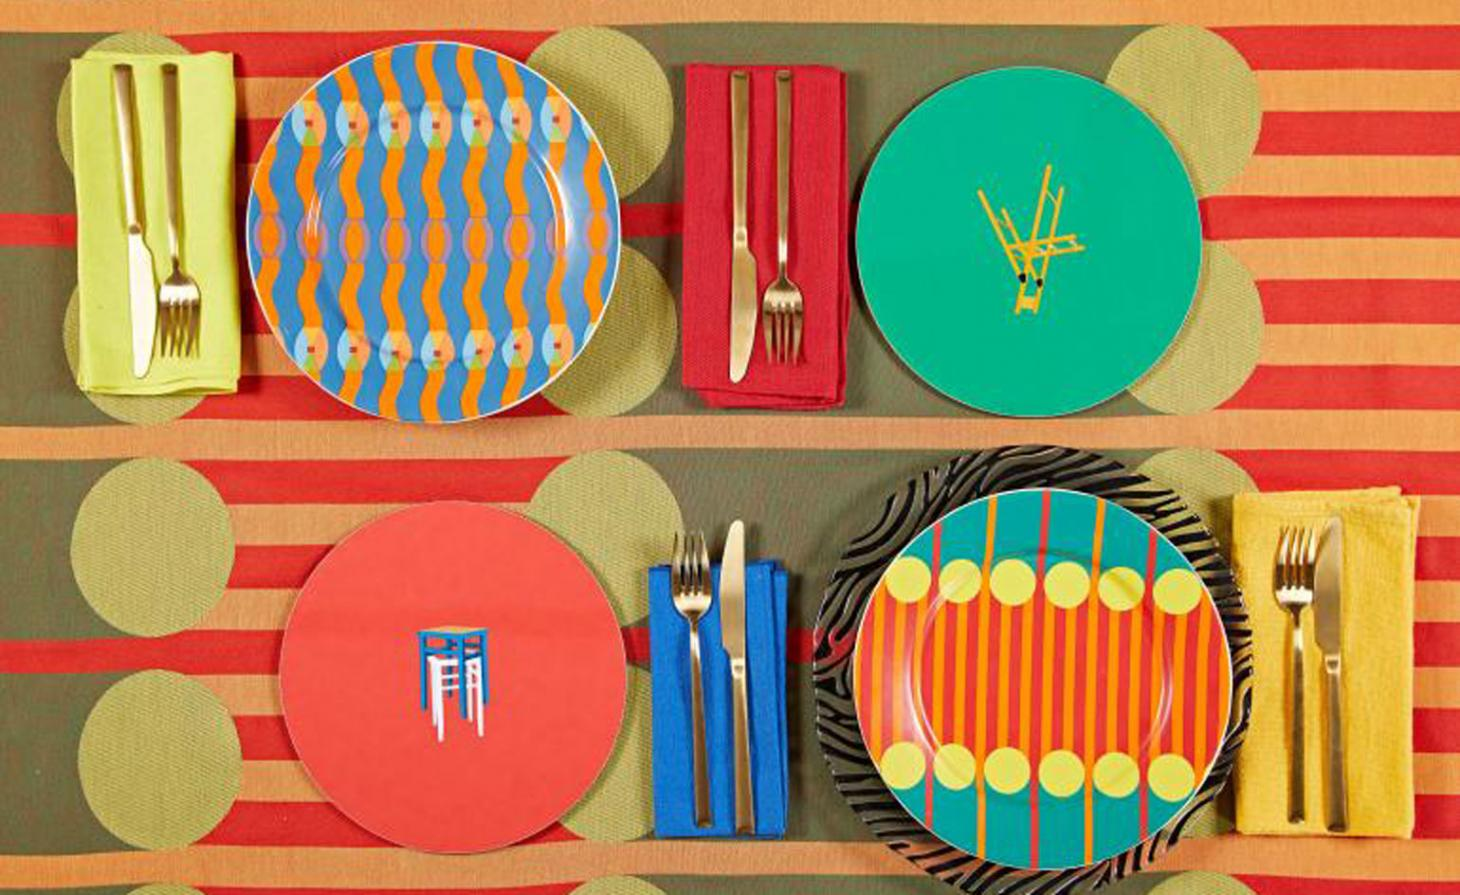 Colourful plates and cutlery on a colourful mat